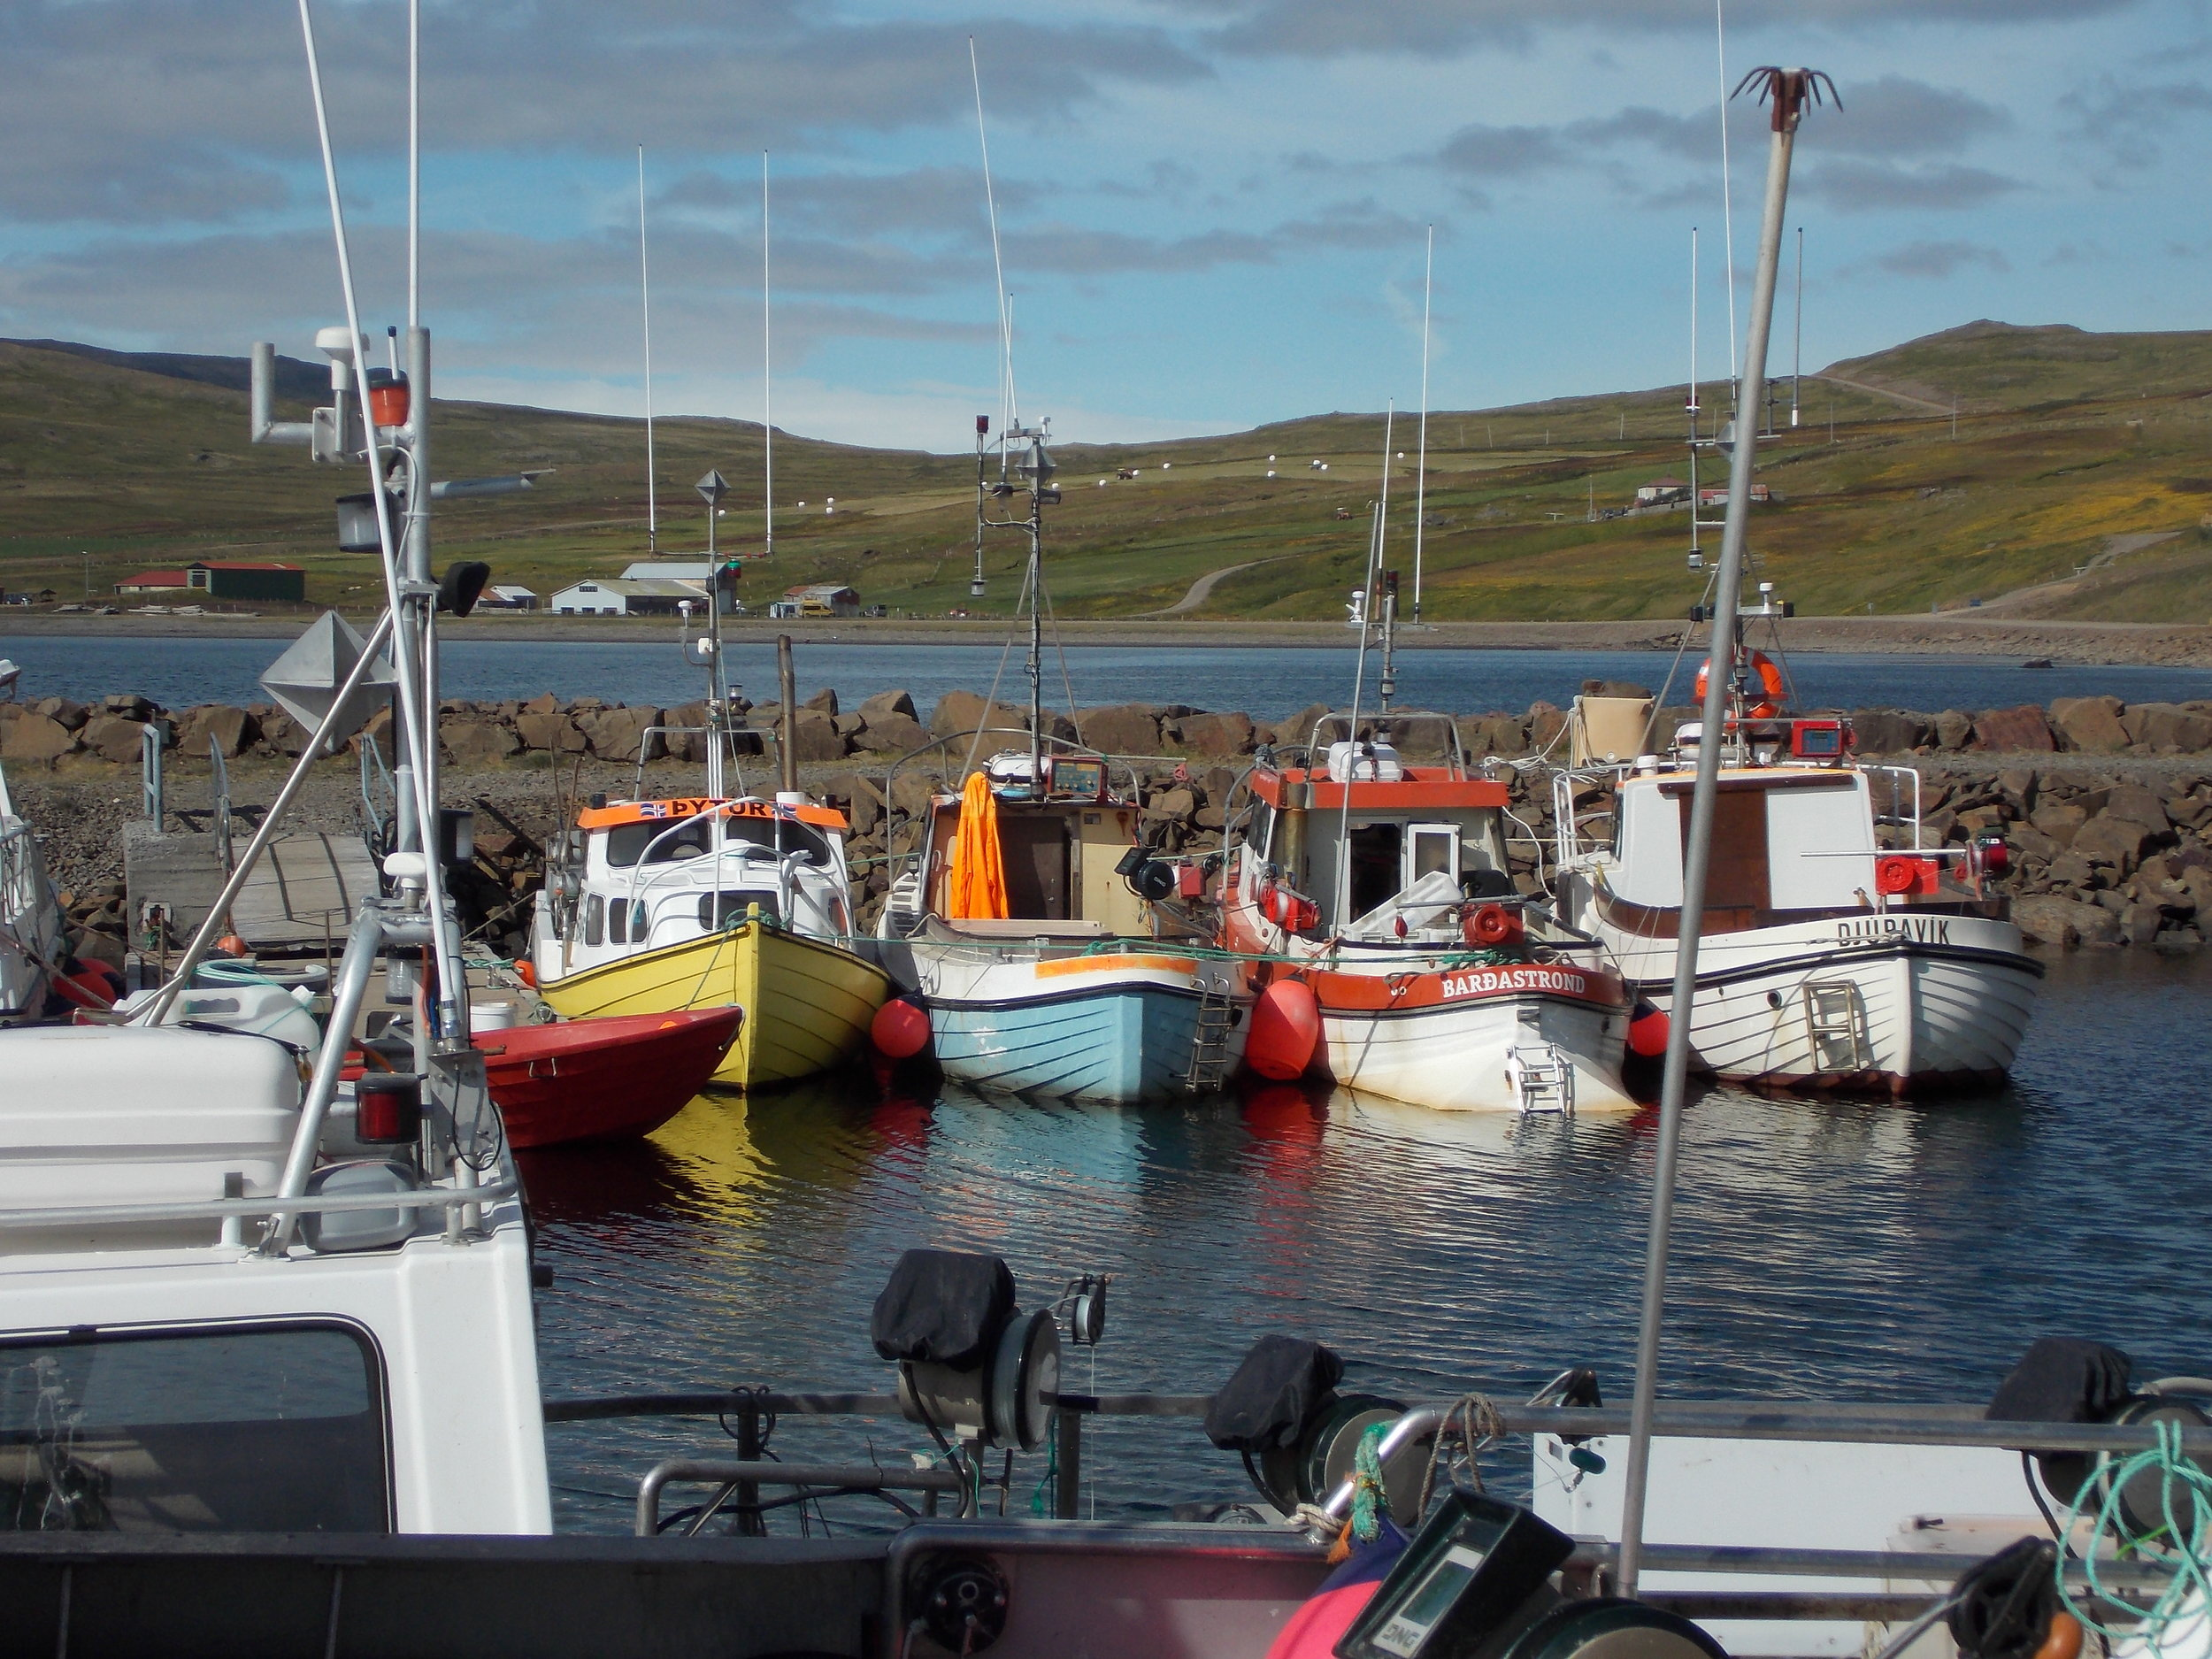 The settlement of Norðurfjörður is home to 50 people who are snowed in all winter when the roads shut down. In the summer the harbor in bustling with activity from visiting fishermen due to its close proximity to cod grounds. Photo: All photos courtesy of Catherine Chambers